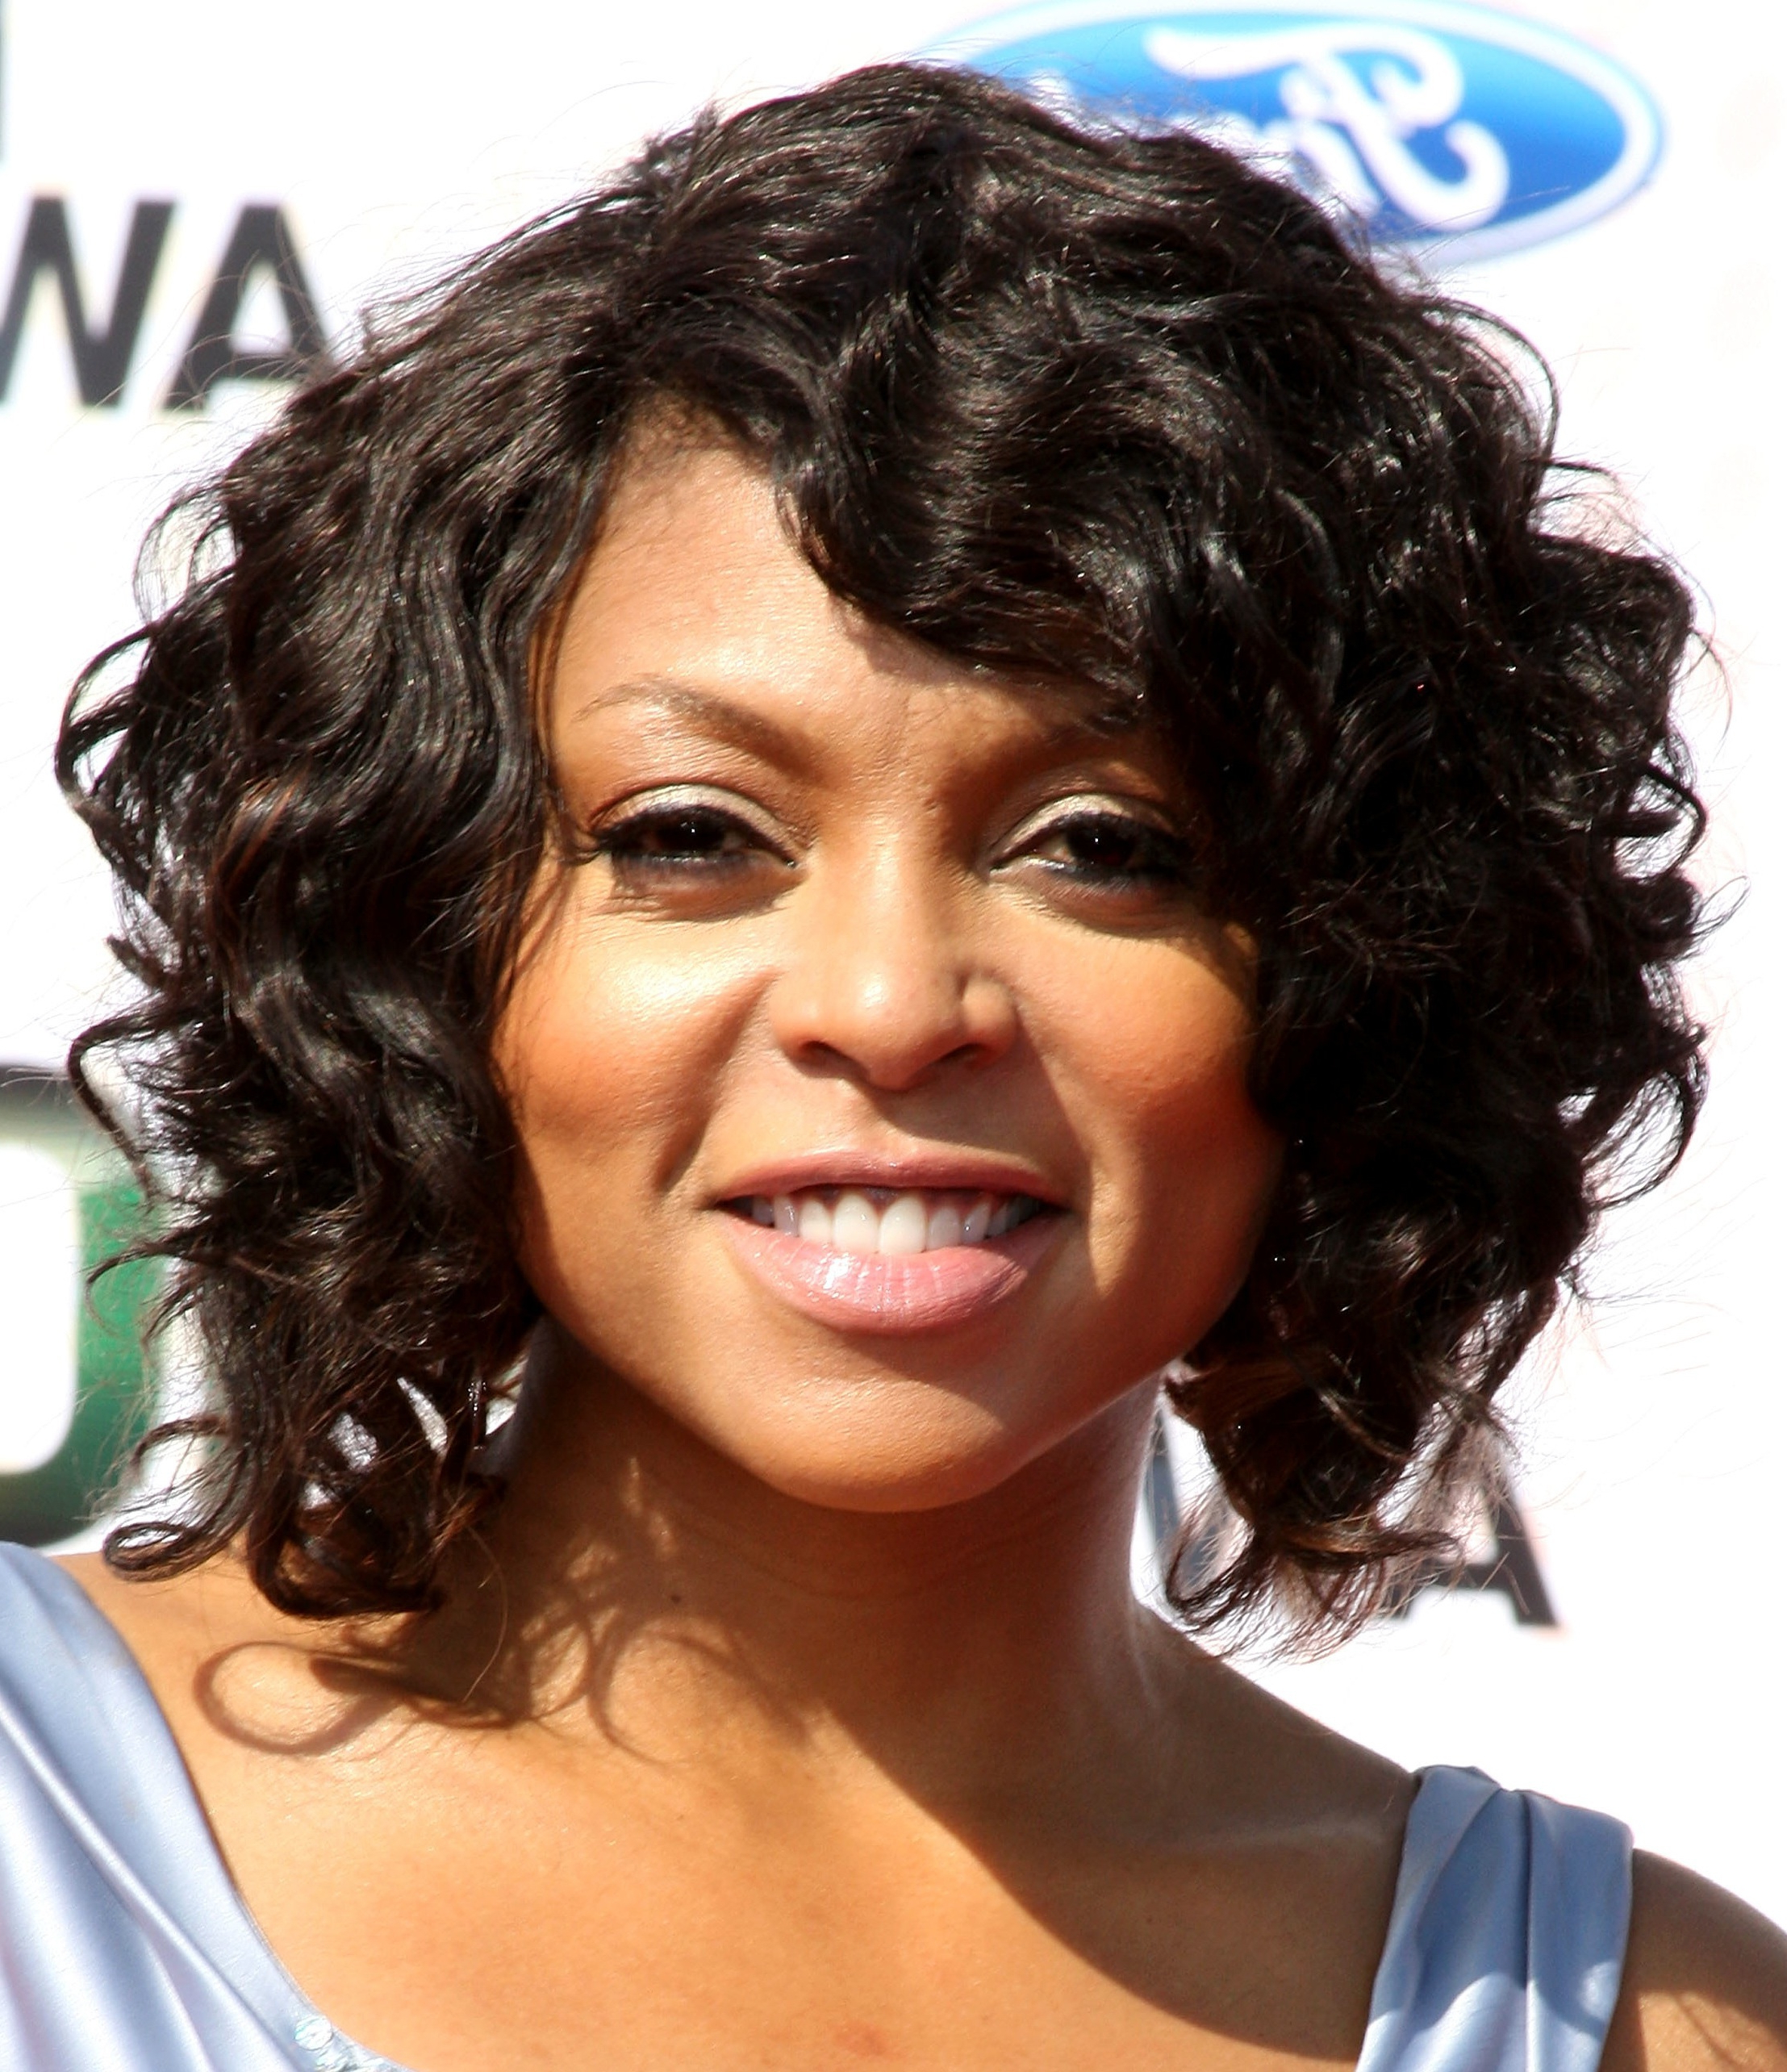 Best And Newest Medium Haircuts For Black Women Round Face Regarding Short Curly Hairstyles For Black Women With Round Faces – Hairstyle (View 7 of 20)